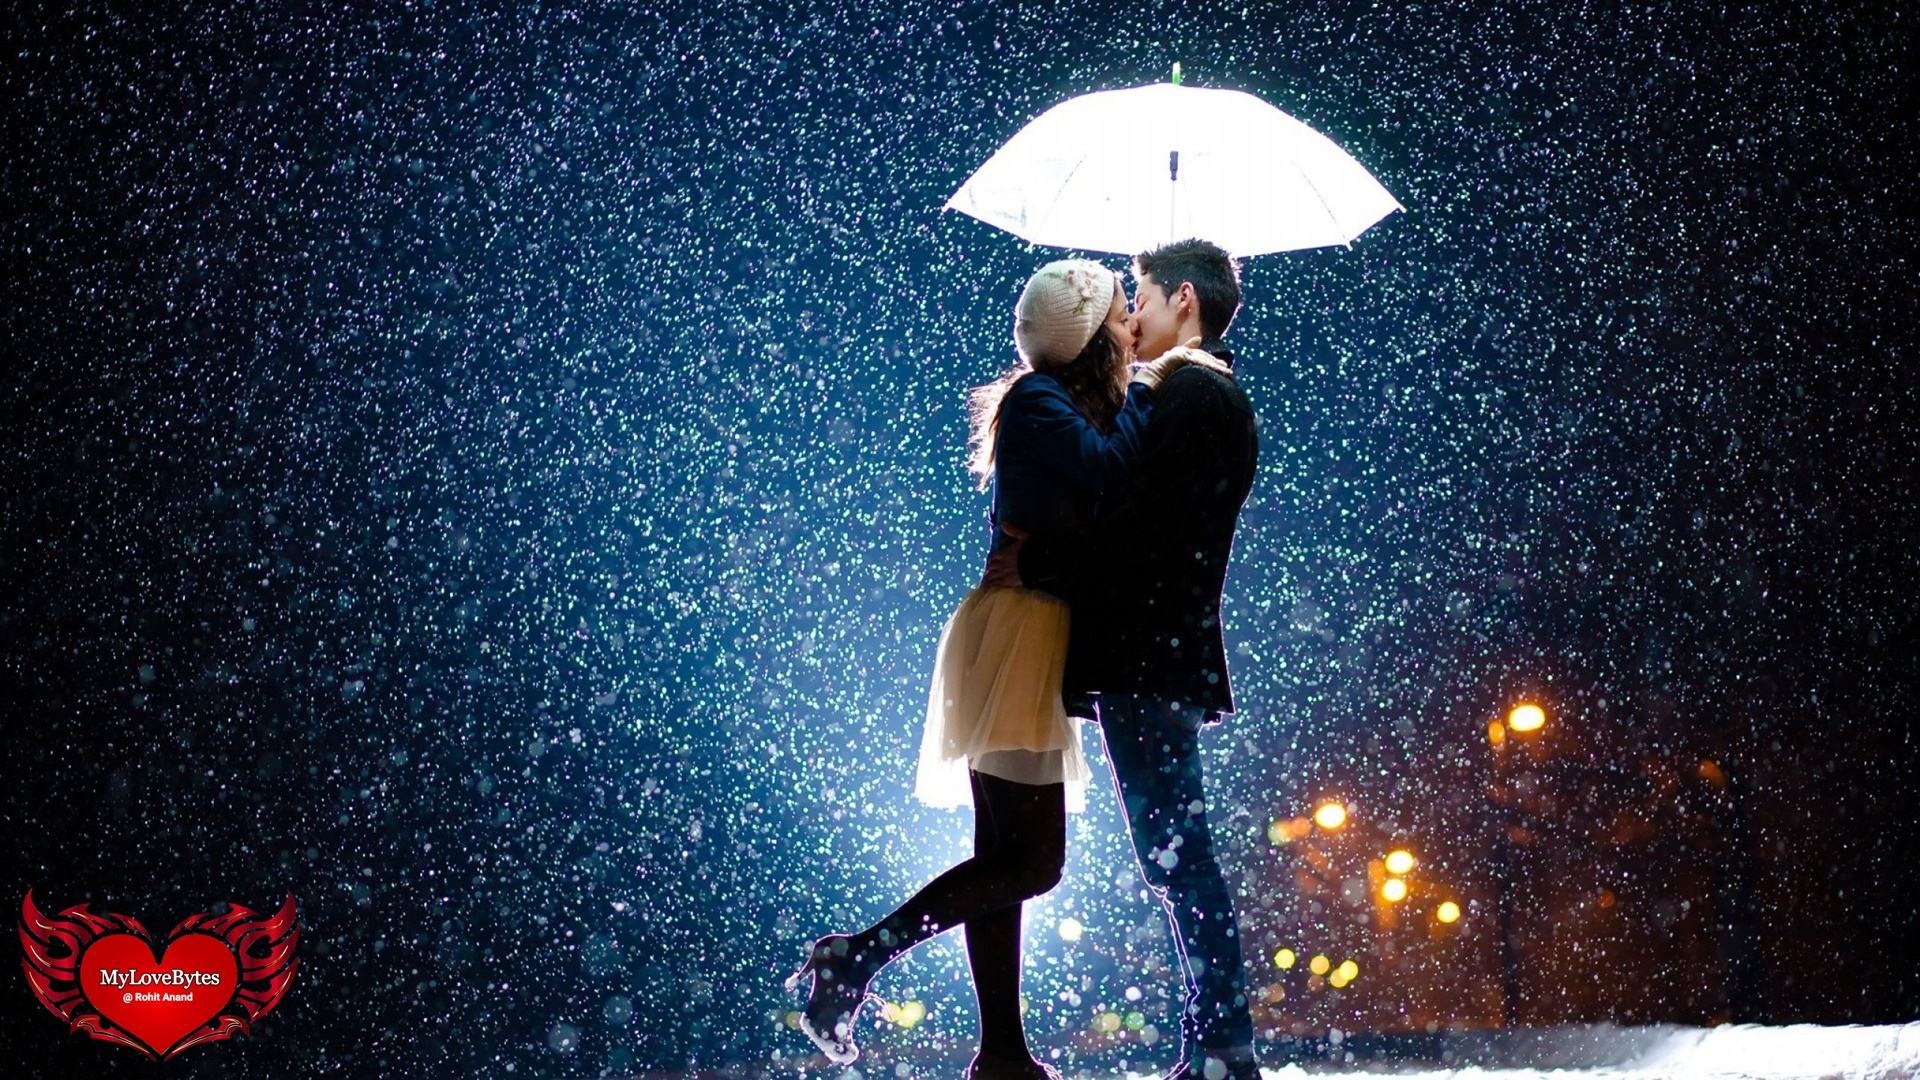 Romantic & Sweet Love Wallpaper Photos in HD Full Size for Free download for laptops and tablets